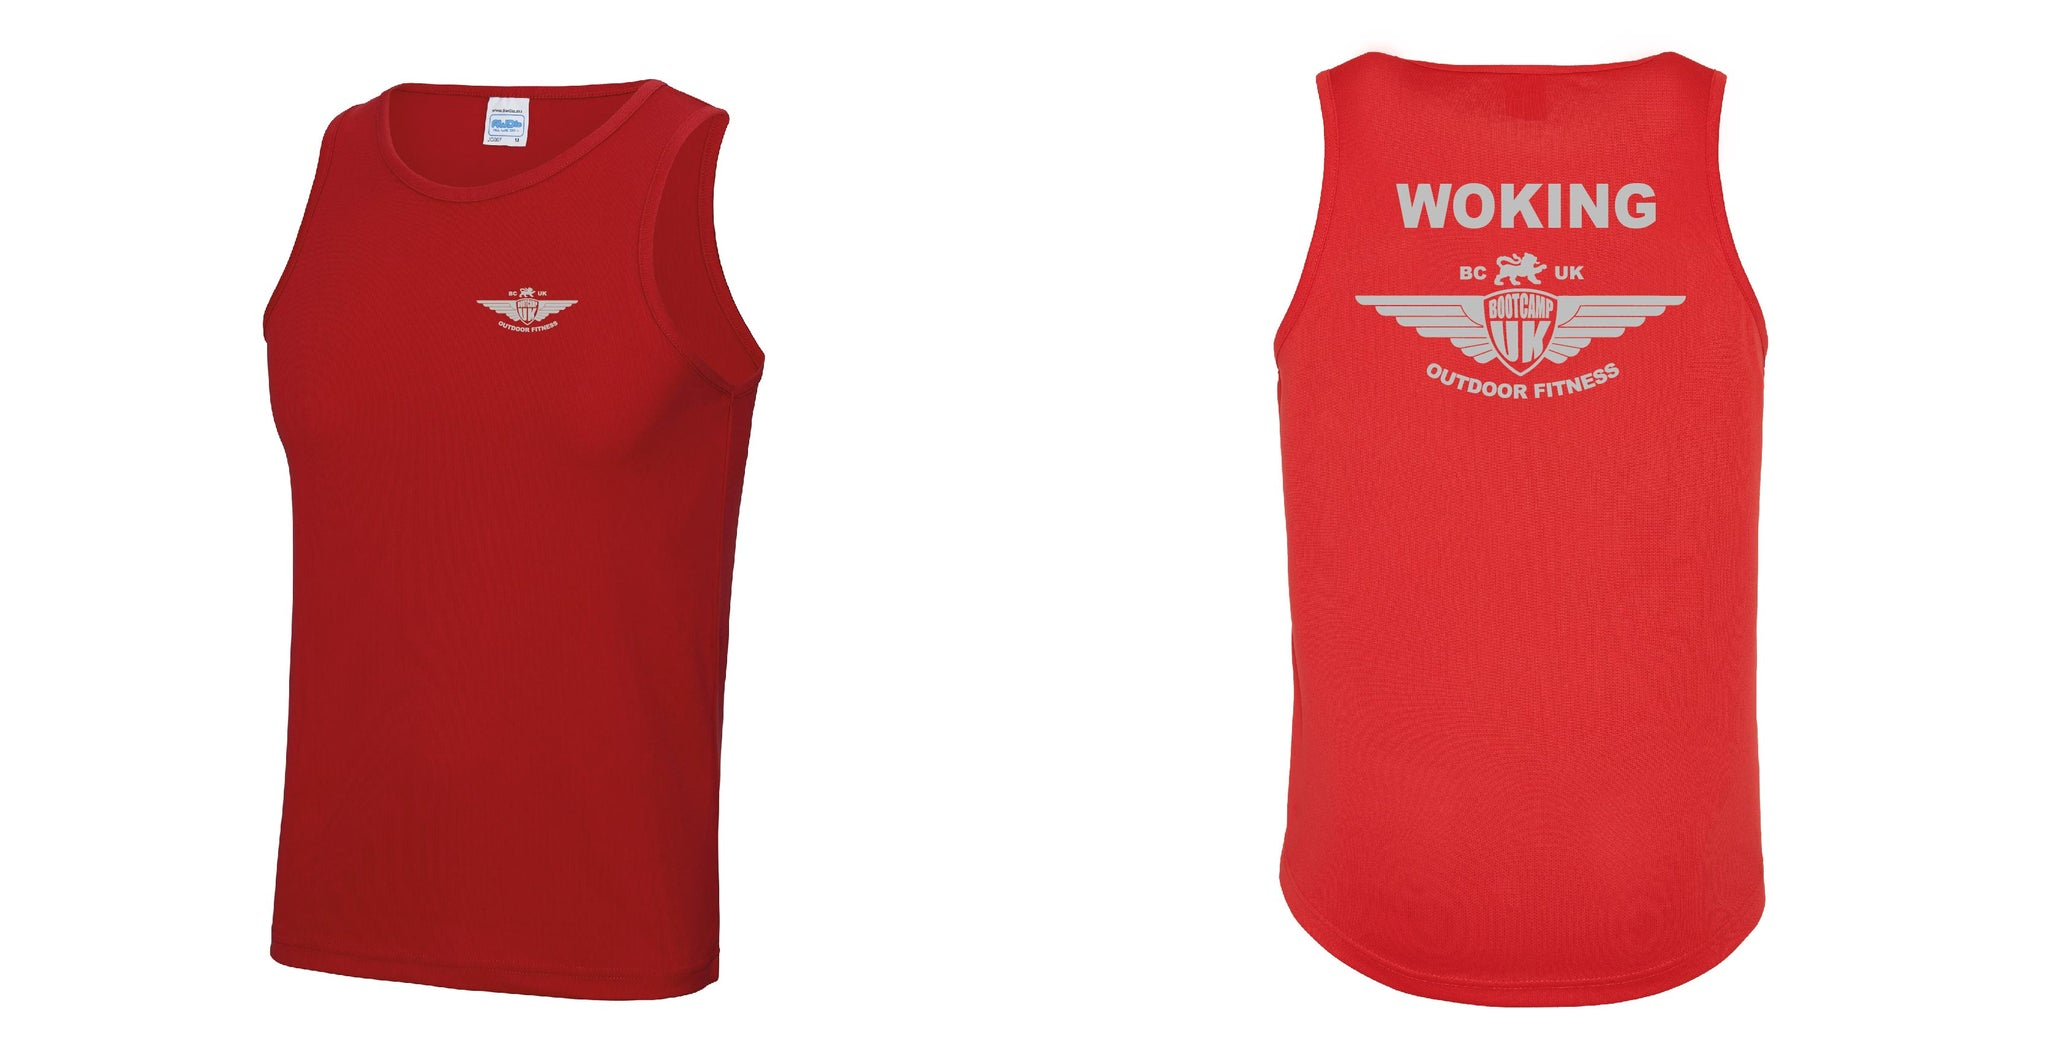 Woking Men's Vest